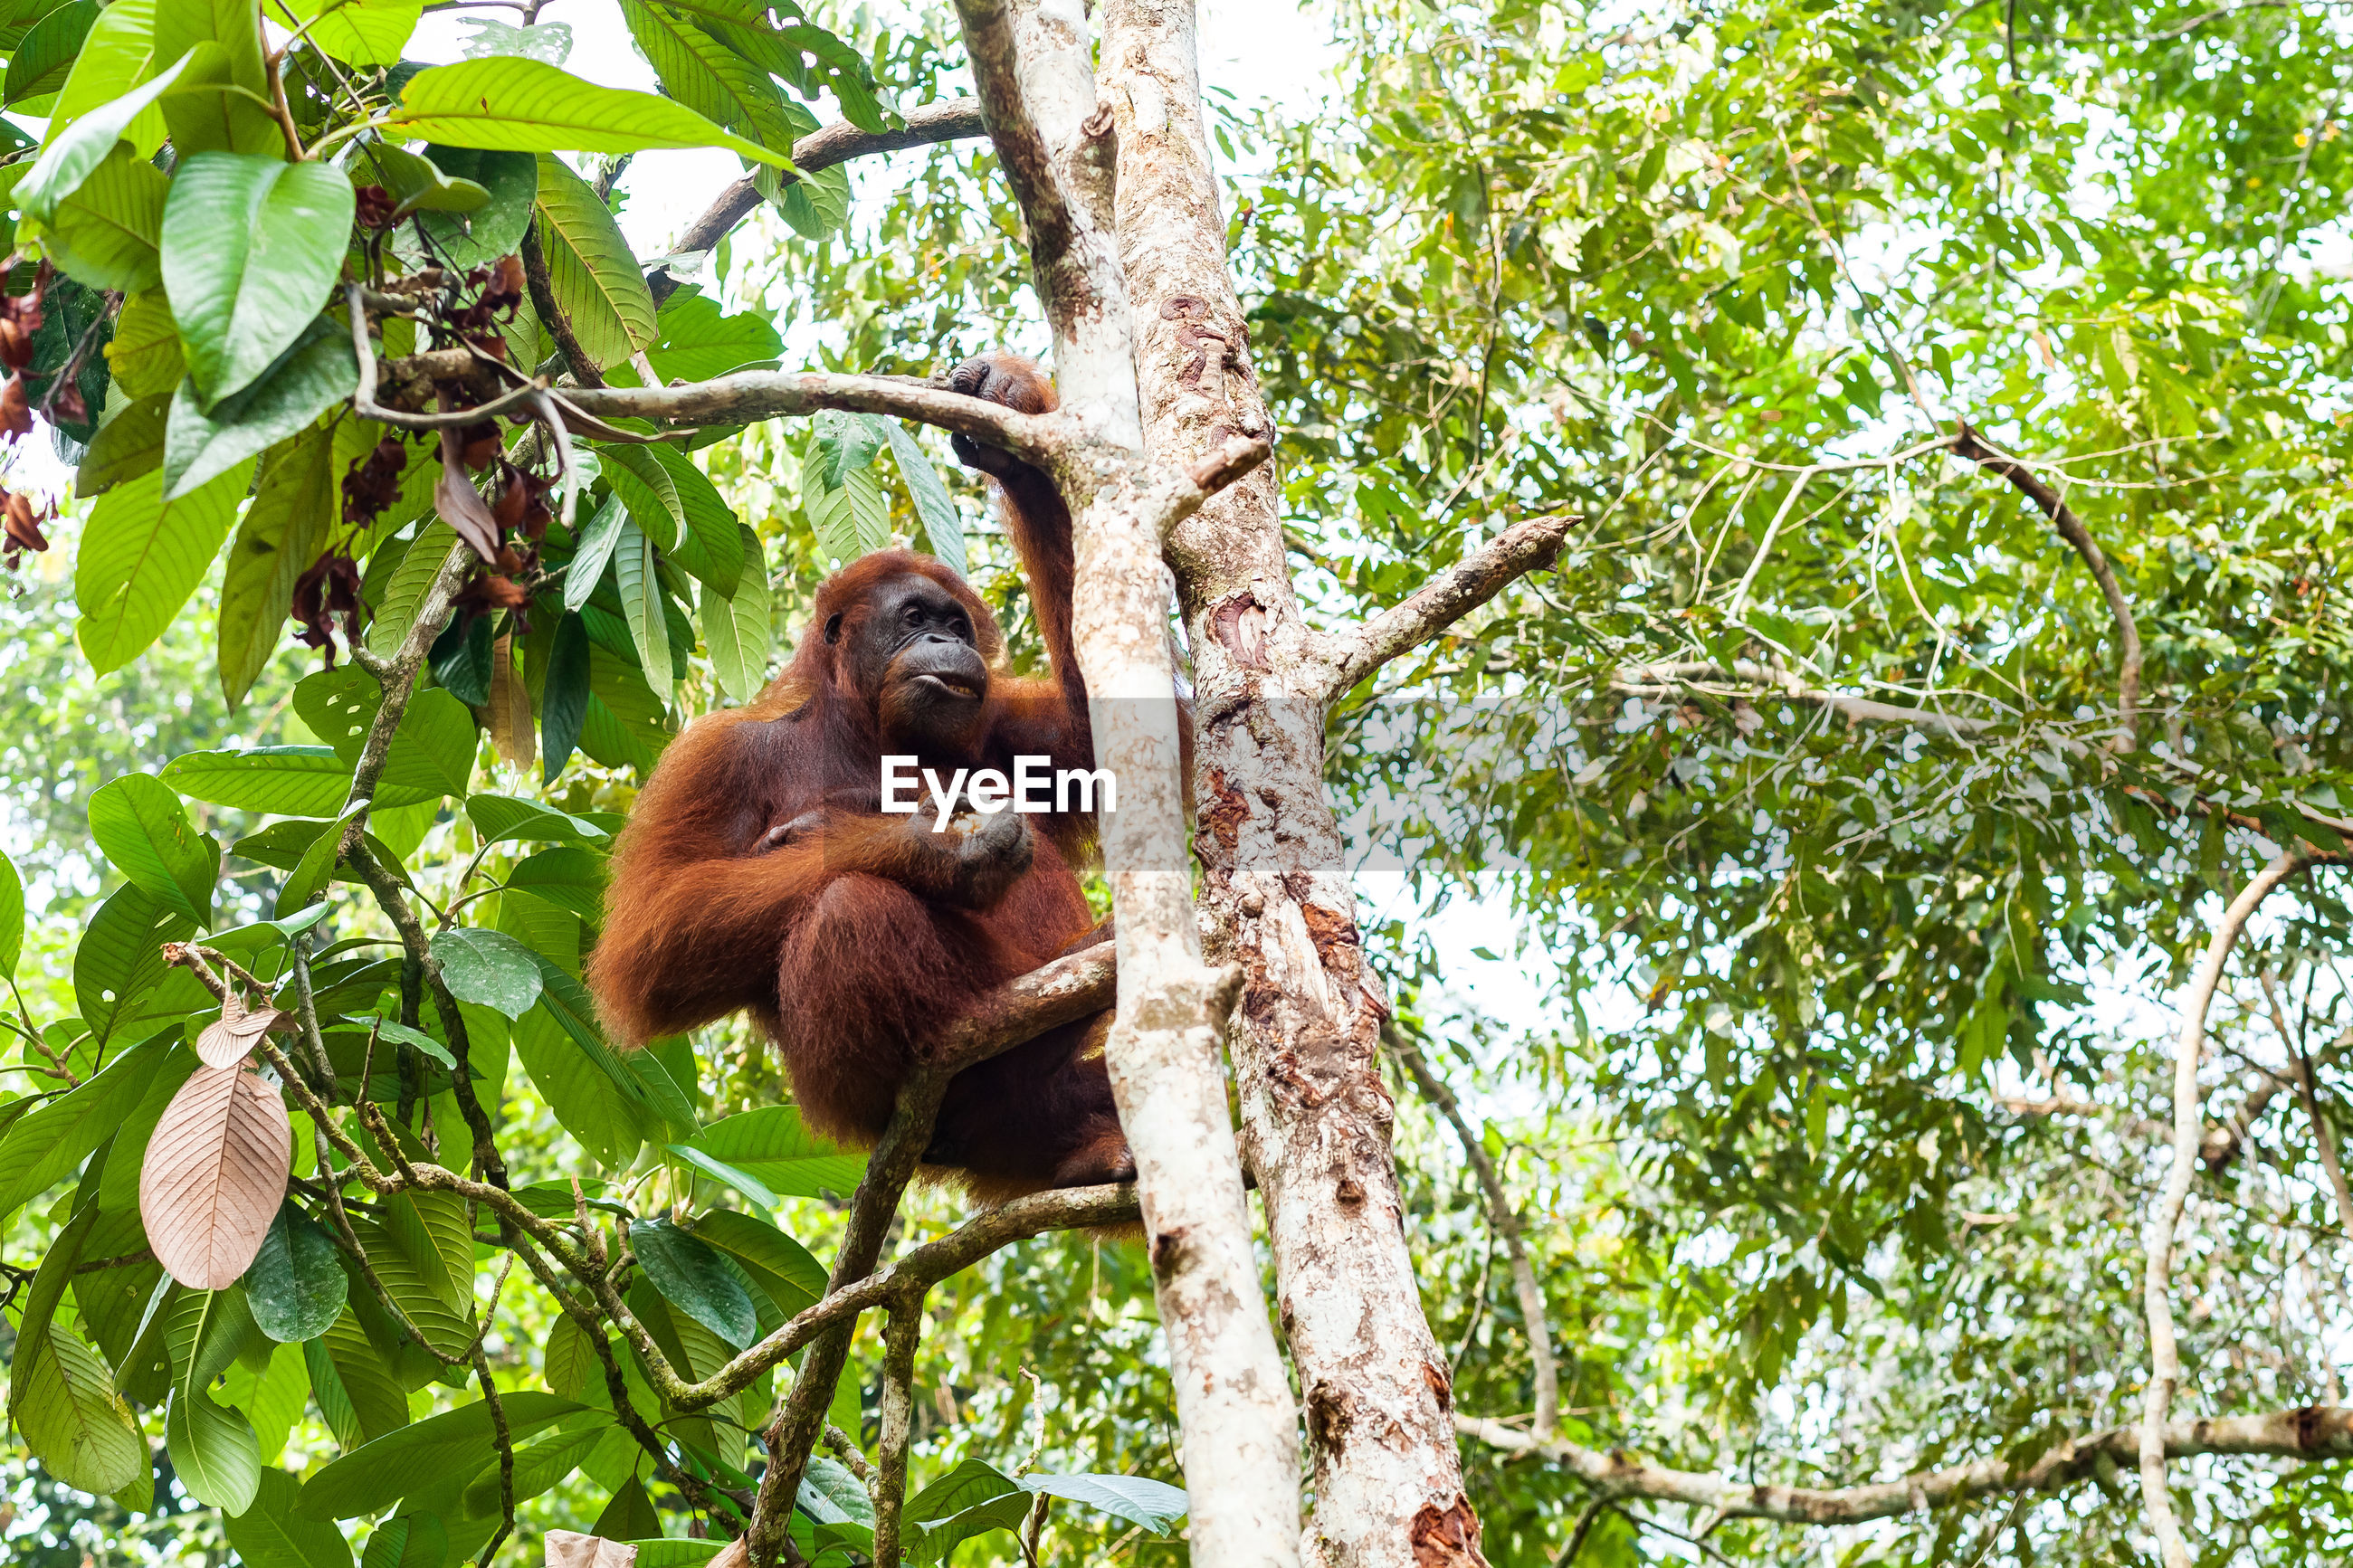 LOW ANGLE VIEW OF MONKEY ON TREE BRANCH